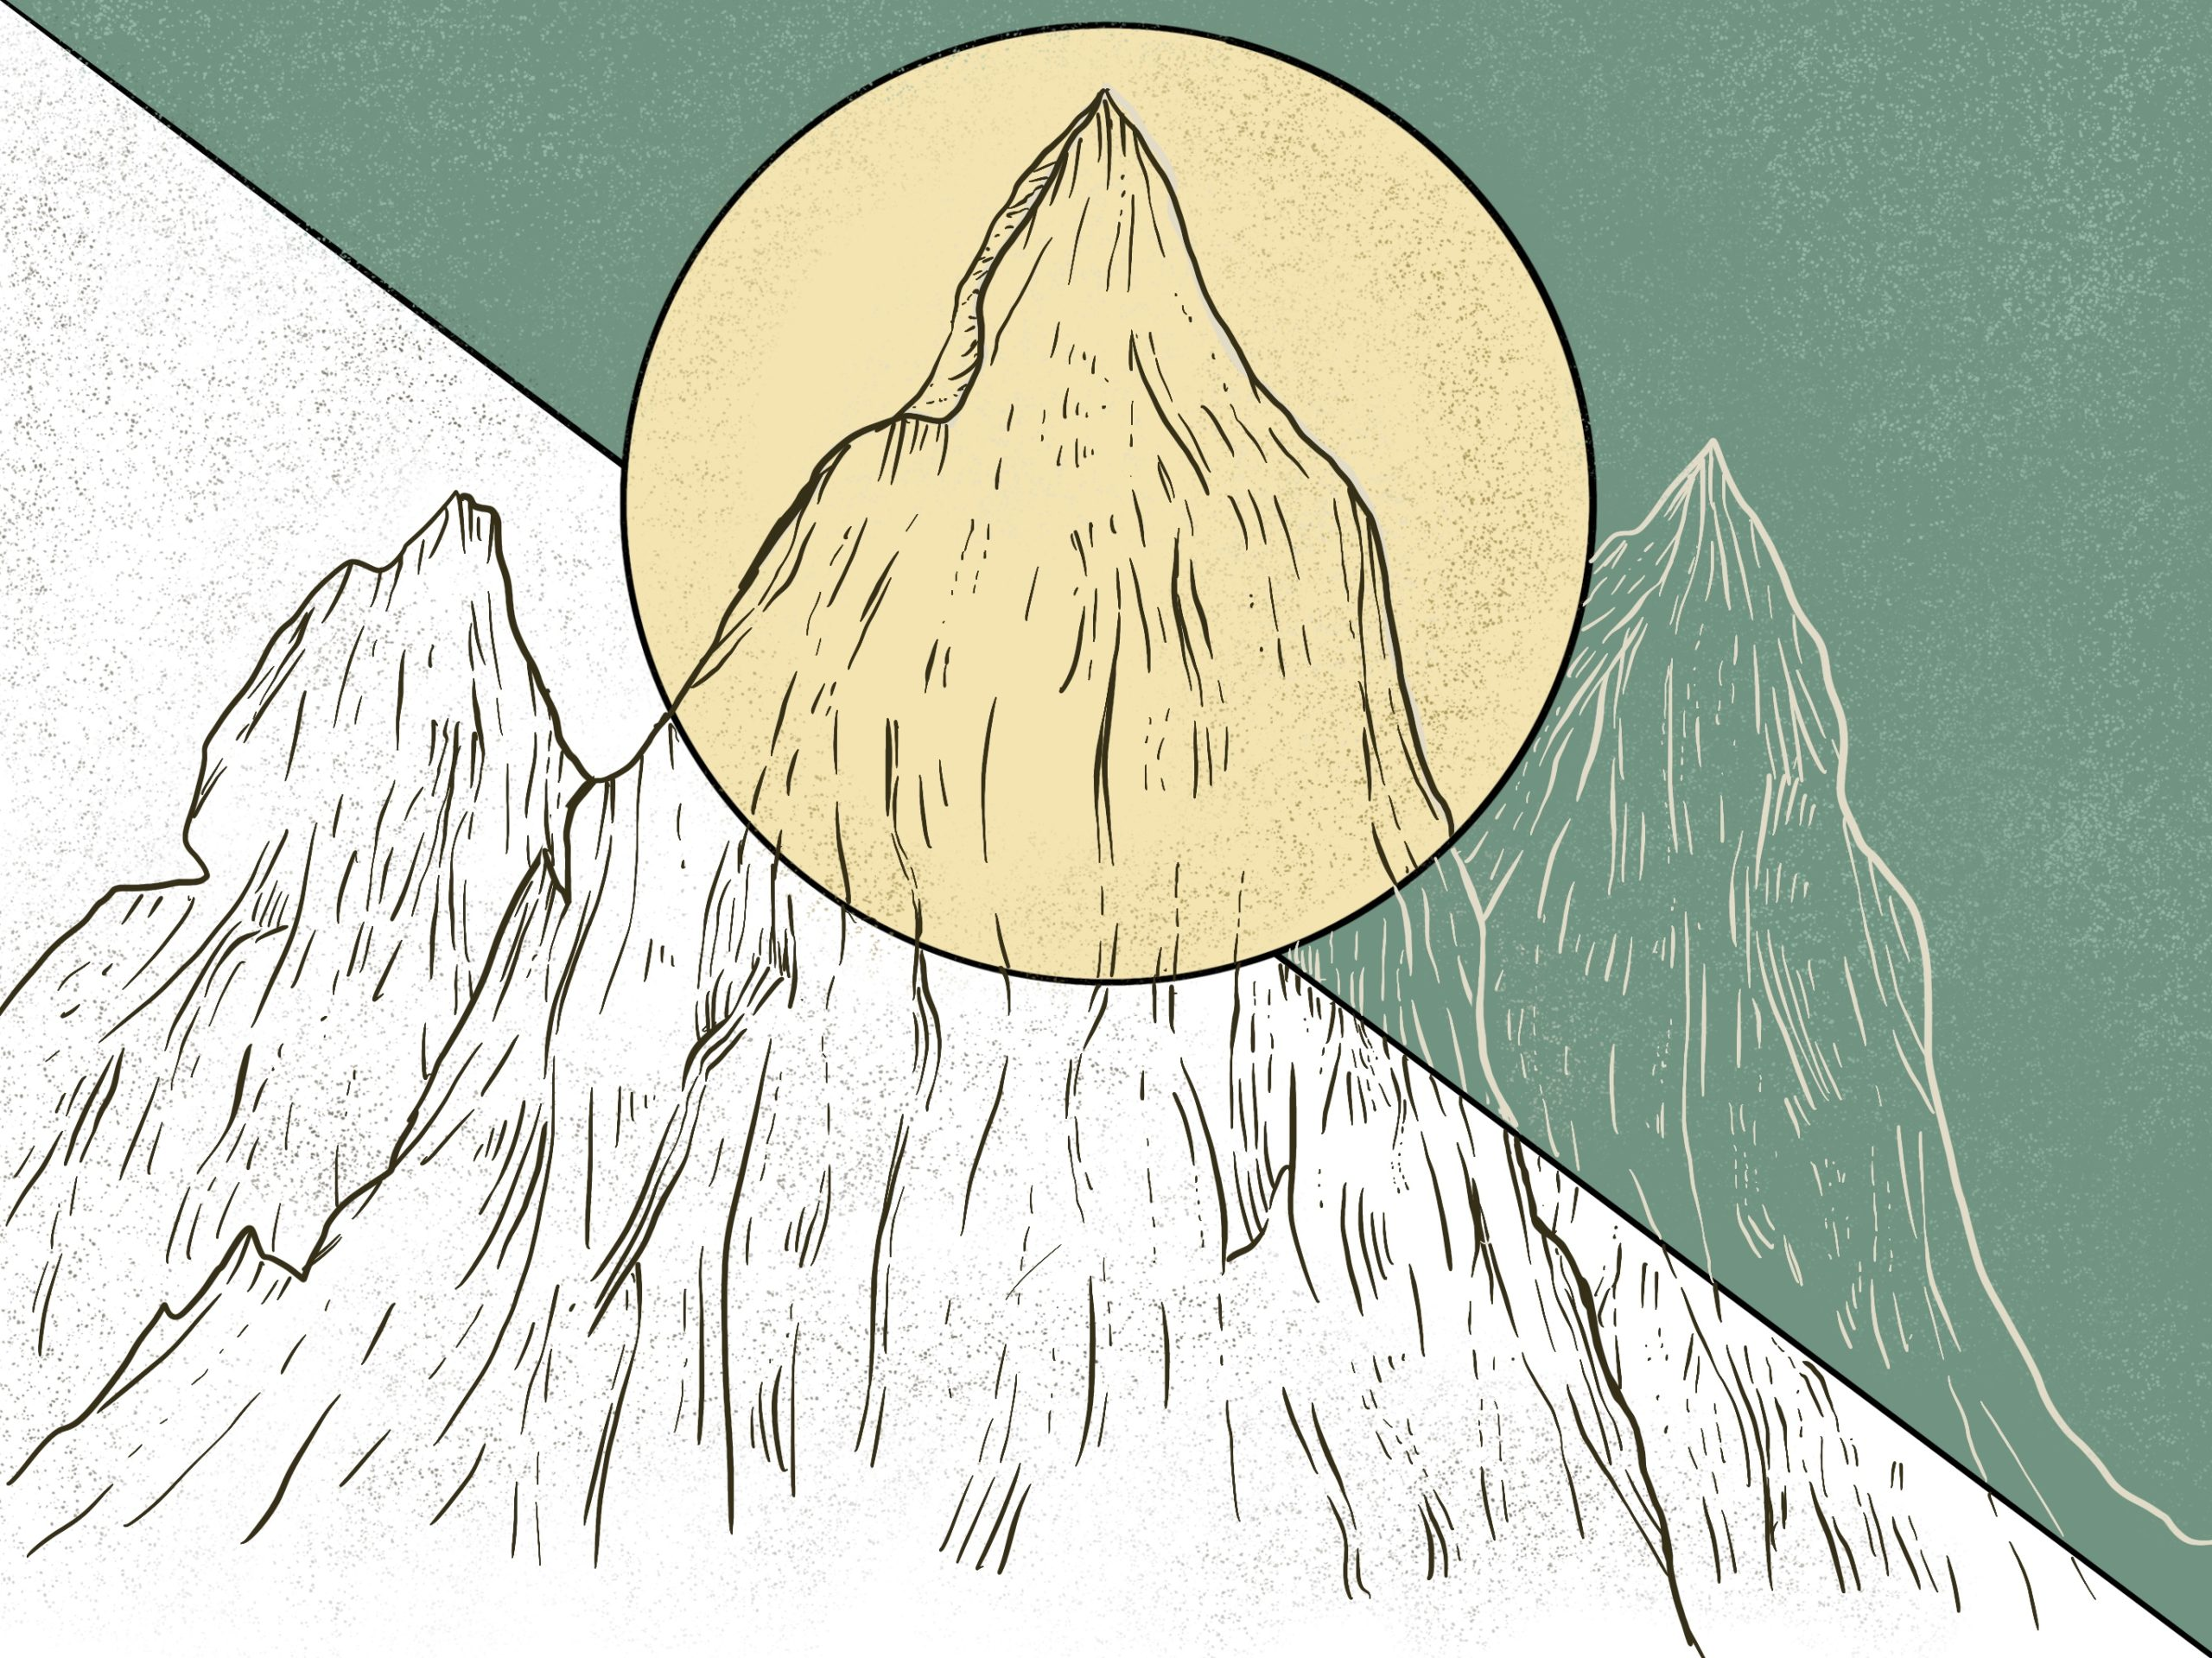 digital mountain drawing with a circle overlap